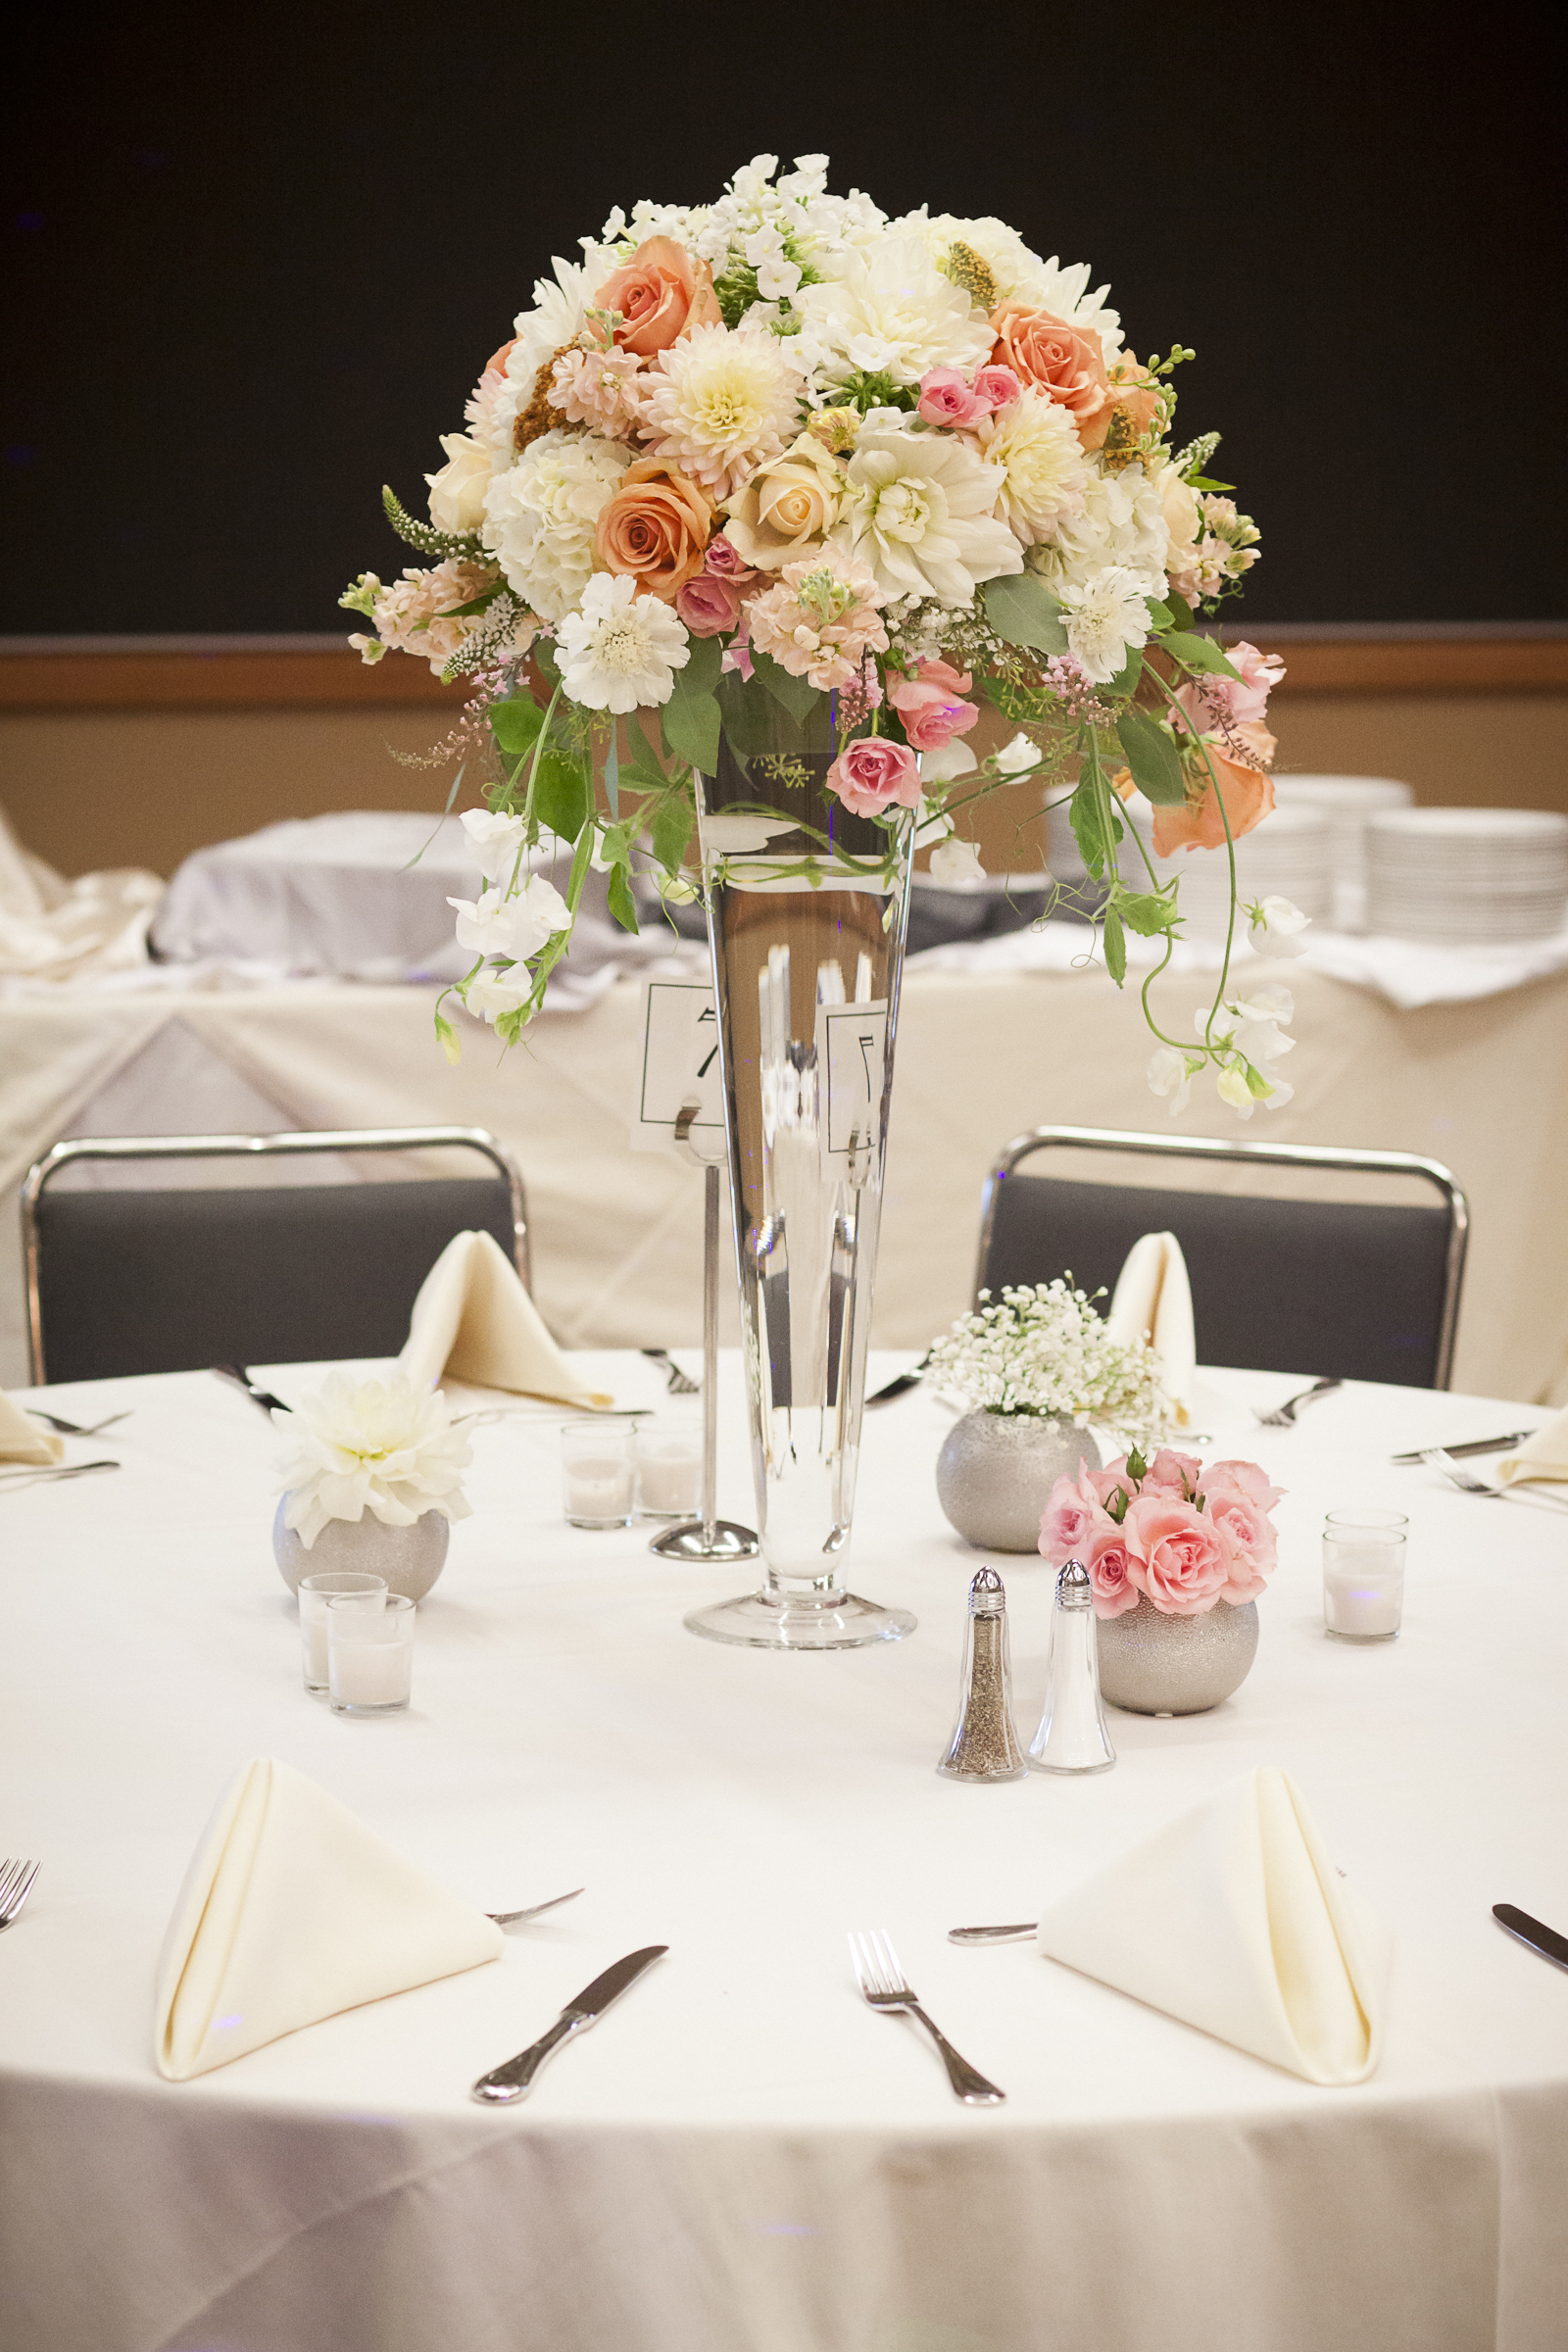 wedding centerpiece with blush and peach roses, white hydrangea and sweet peas